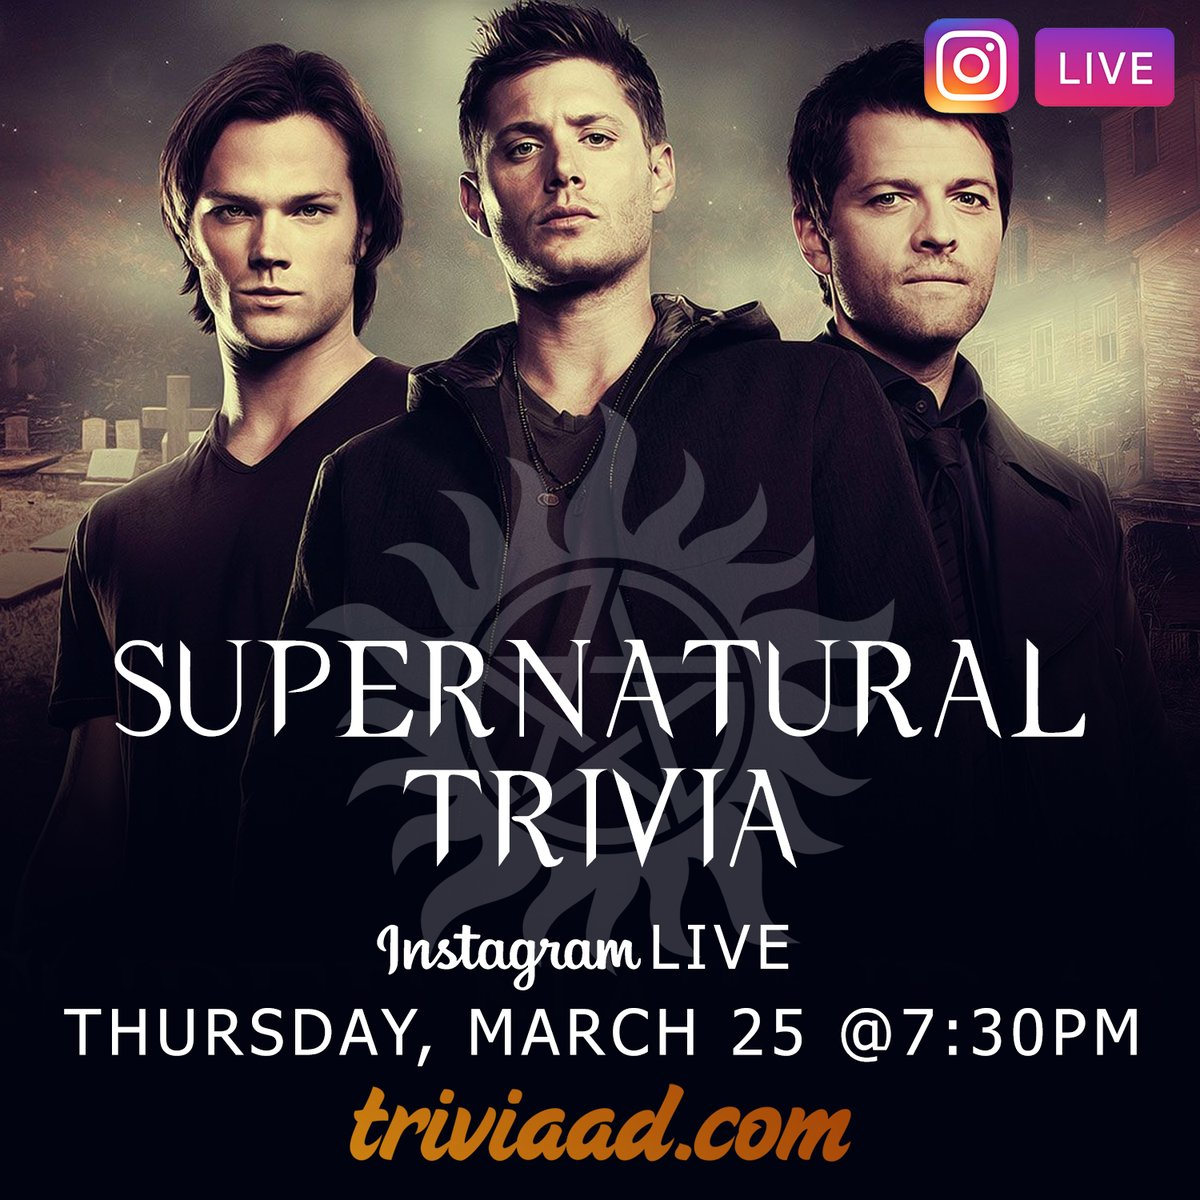 #Supernatural #Trivia on Instagram LIVE on Thursday, March 25 at 7:30pm ET. Follow @TriviaADDotCom on Instagram to play! #SamWinchester #DeanWinchester #JaredPadalecki #JensenAckles